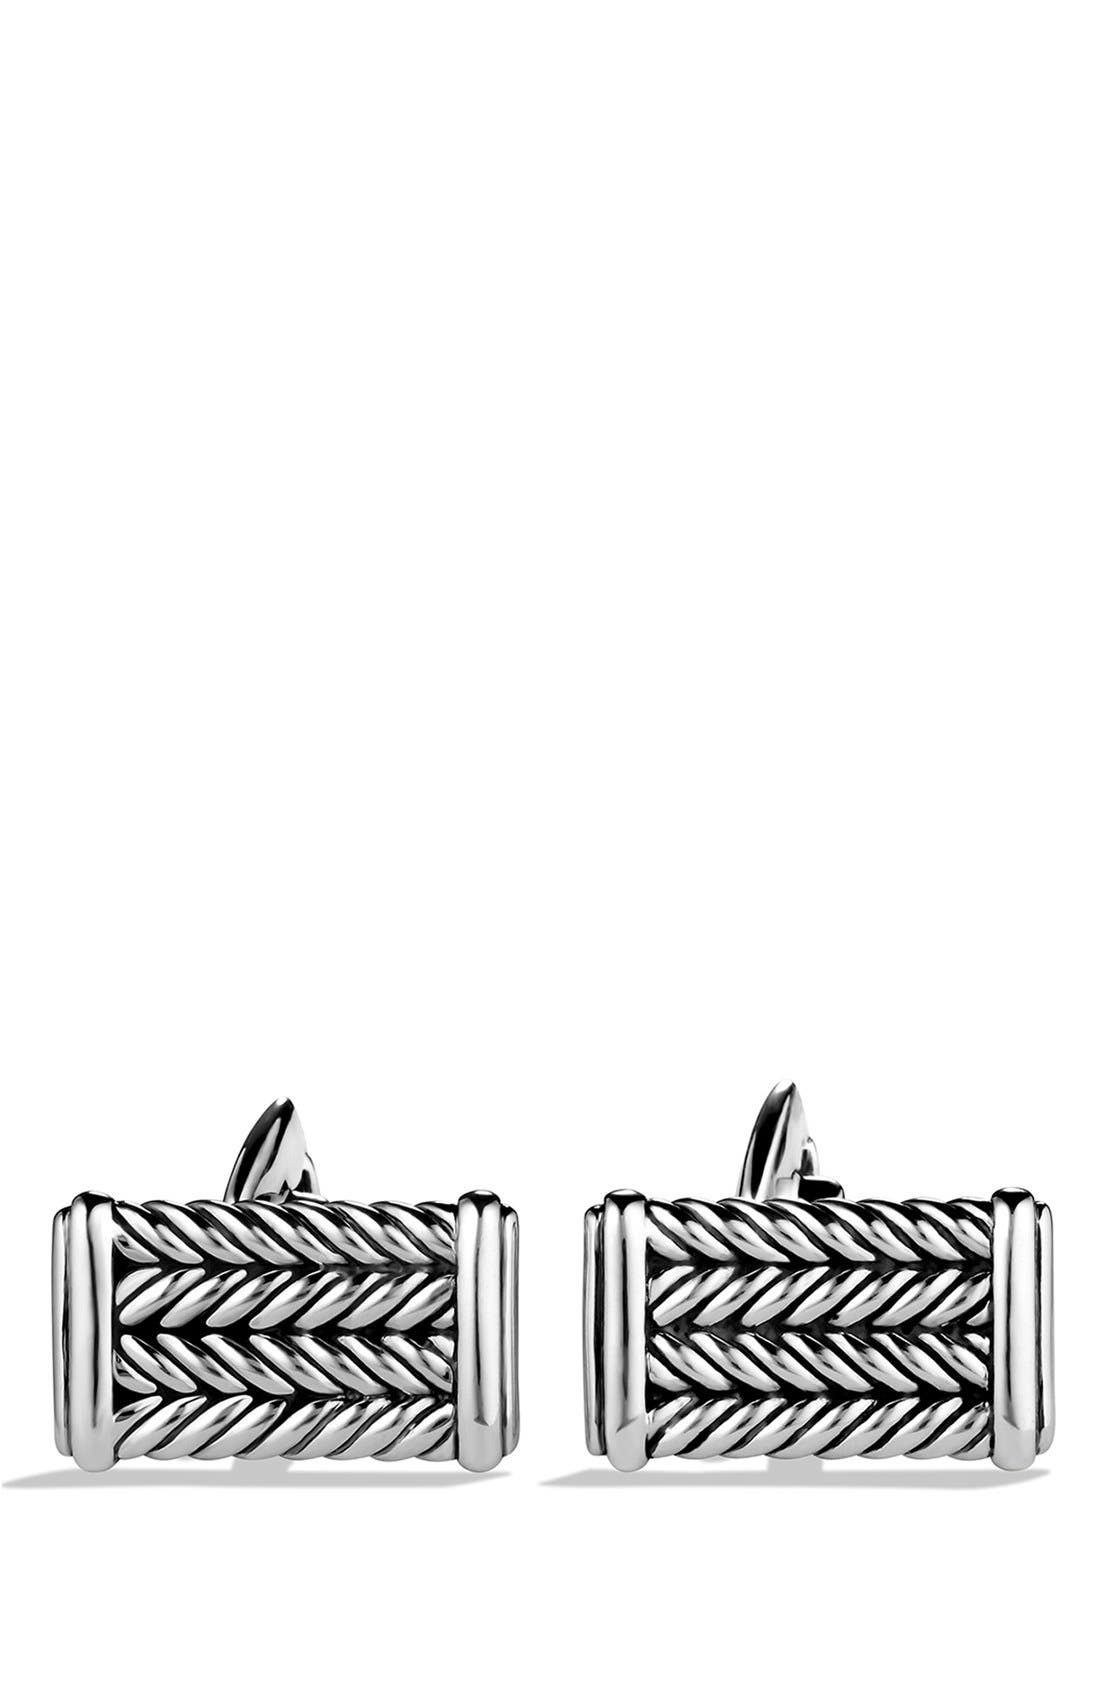 'Chevron' Cuff Links,                             Alternate thumbnail 2, color,                             Silver